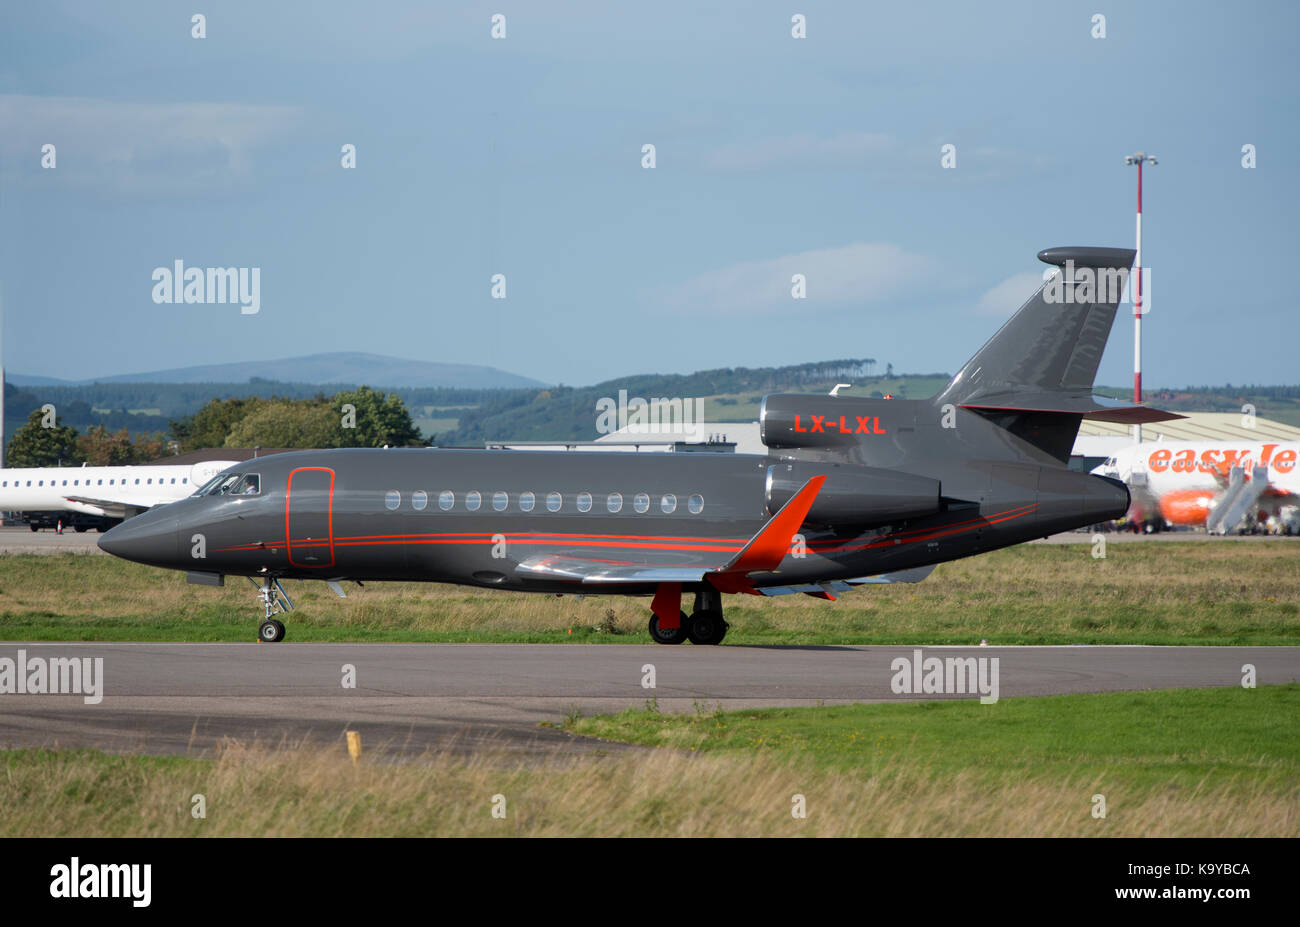 A French built Dassault 900EX Falcon business jet arriving at Inverness Airport in the sunshine. Stock Photo